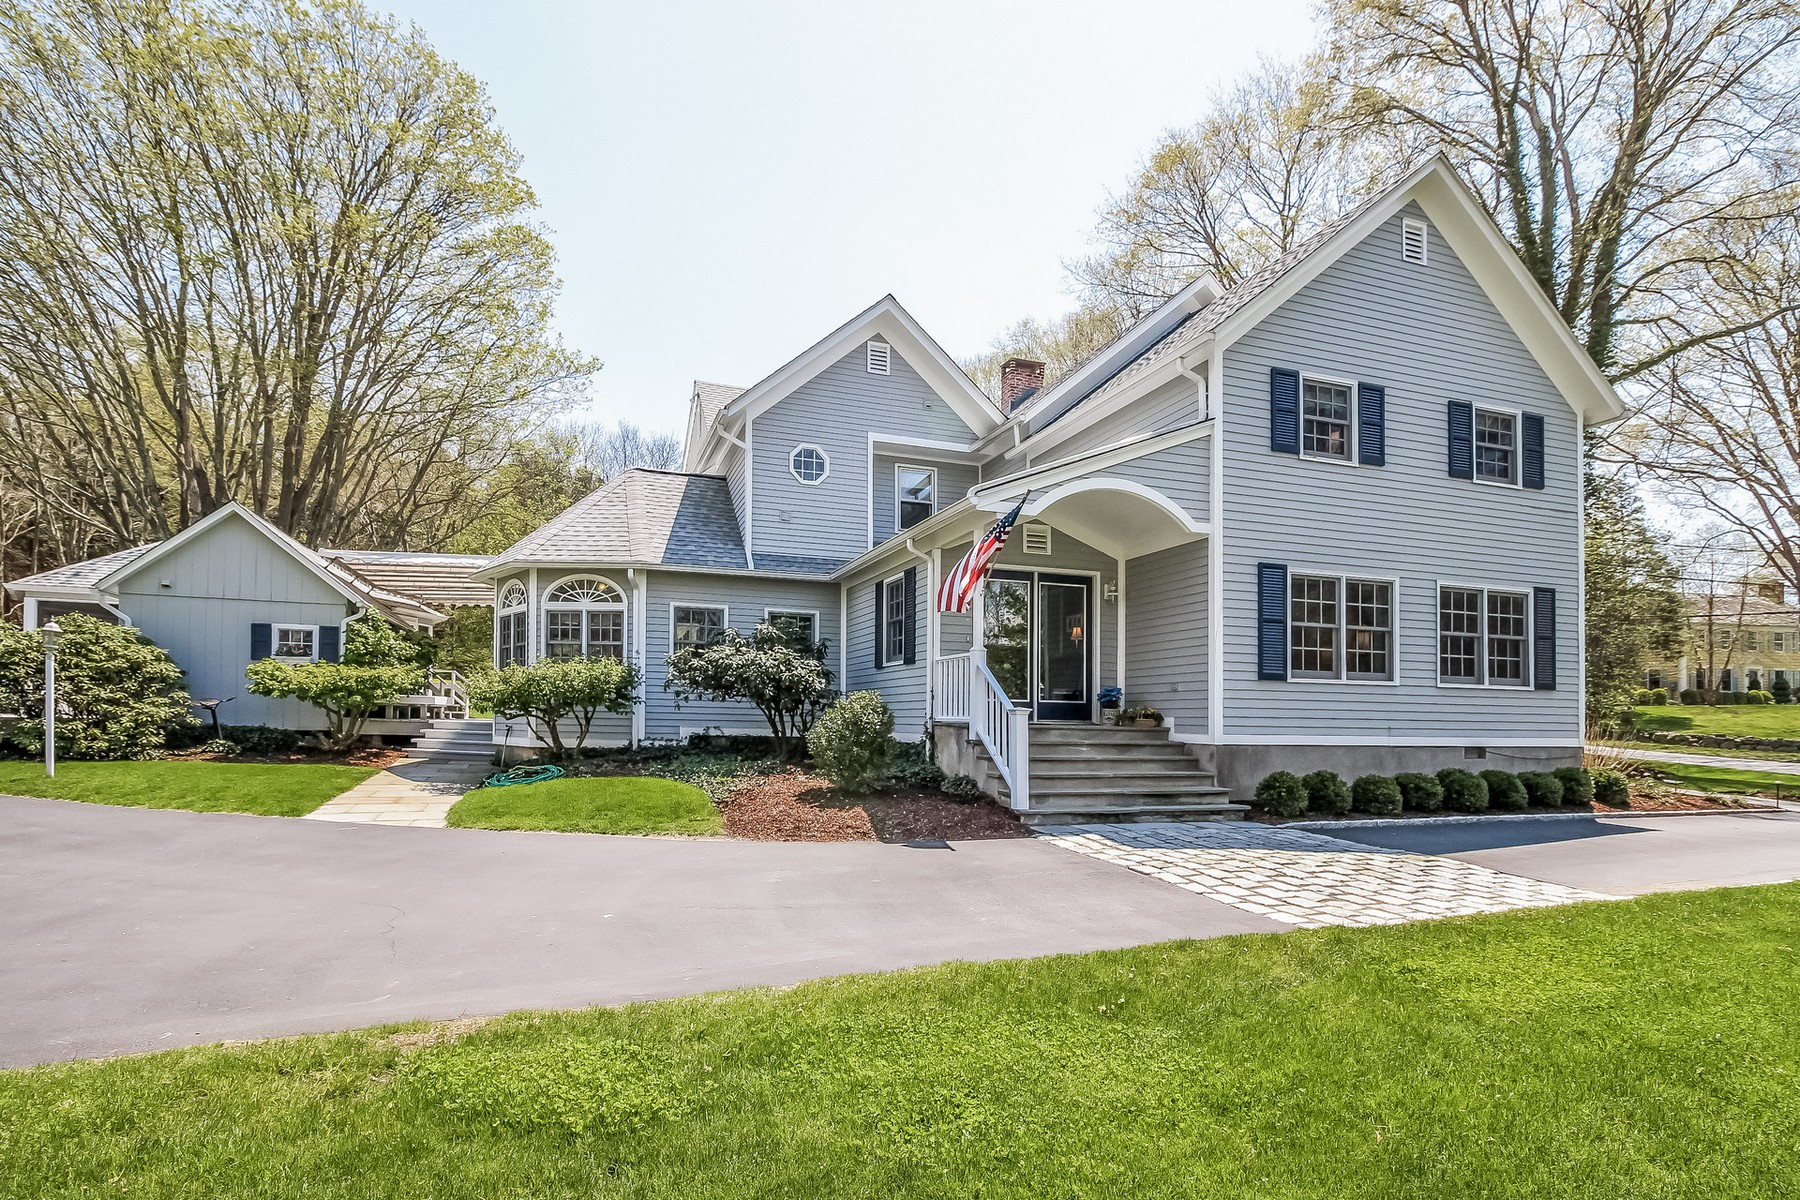 Single Family Home for Sale at History blends with the present in this gracious colonial 4 Johnny Cake Hill Road Old Lyme, Connecticut, 06371 United States